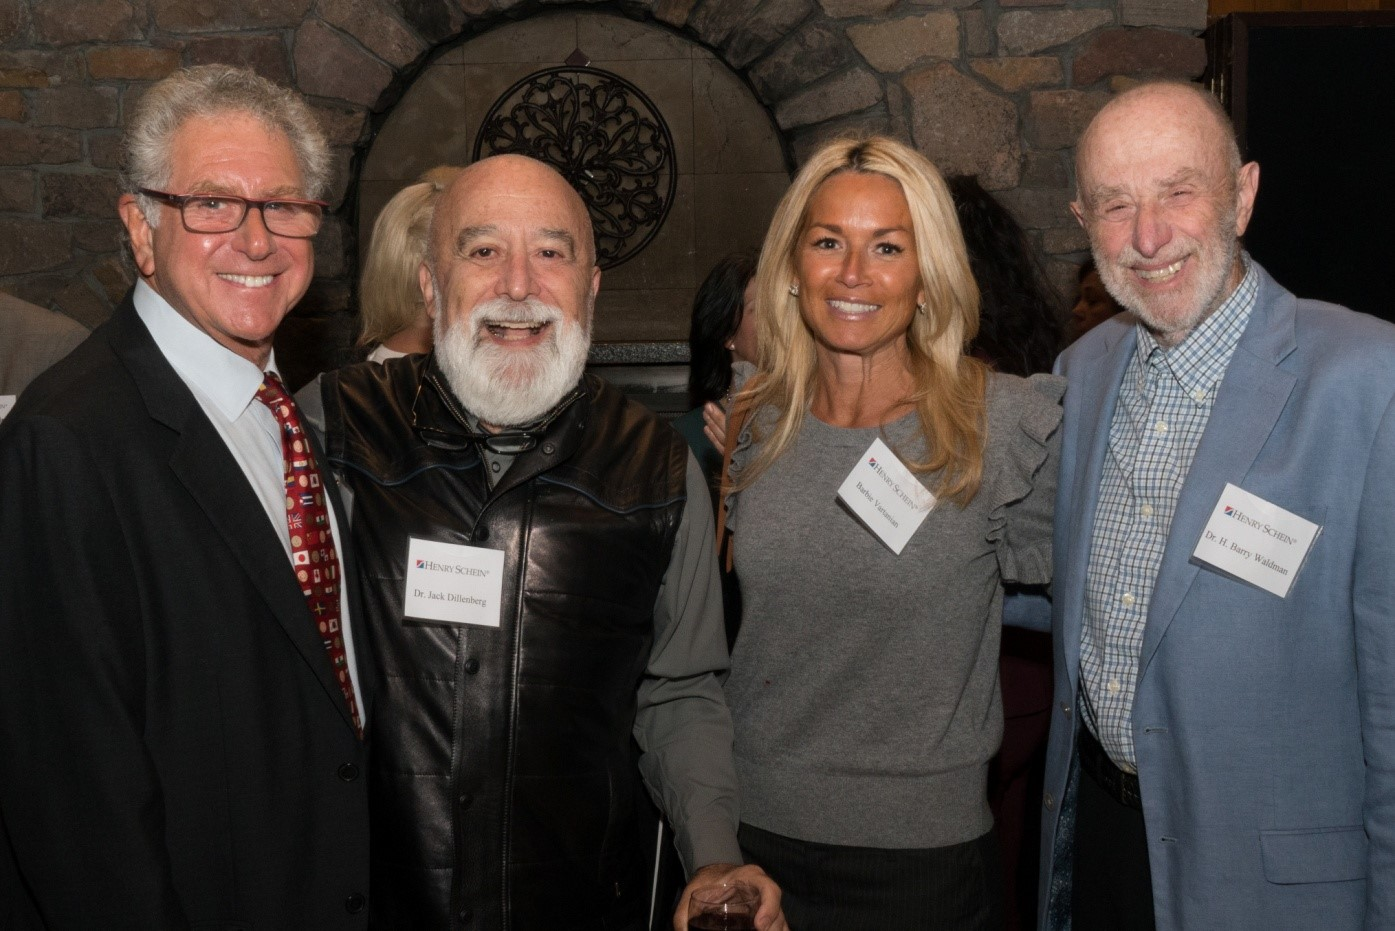 [L-R] Dr. Steve Perlman of Special Olympics, Special Smiles joins Dr. Jack Dillenberg, Arizona School of Dentistry & Oral Health, Barbie Vartanian, Pacific Dental Foundation and Dr. Barry Waldman, Stonybrook University, at the Project Accessible Oral Health 2017's annual event dinner.